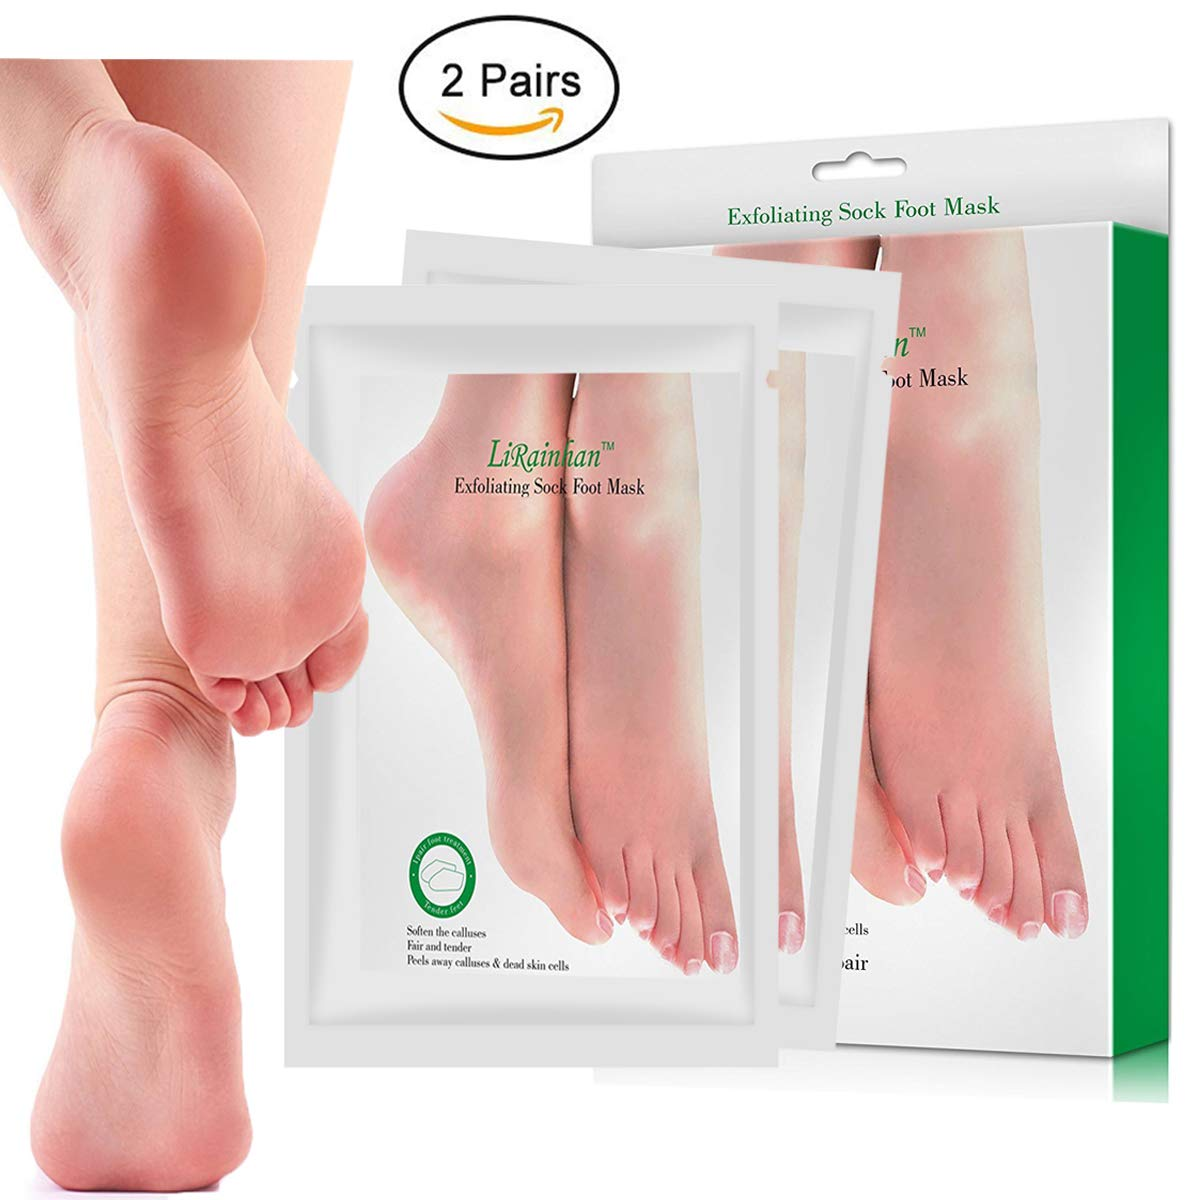 2 Pairs Exfoliant Foot Peel Mask for Soft Feet in 3-7 Days, Exfoliating Booties for Peeling Off Calluses & Dead Skin, Baby Your feet, for Men & Women (Rose) LiRainhan